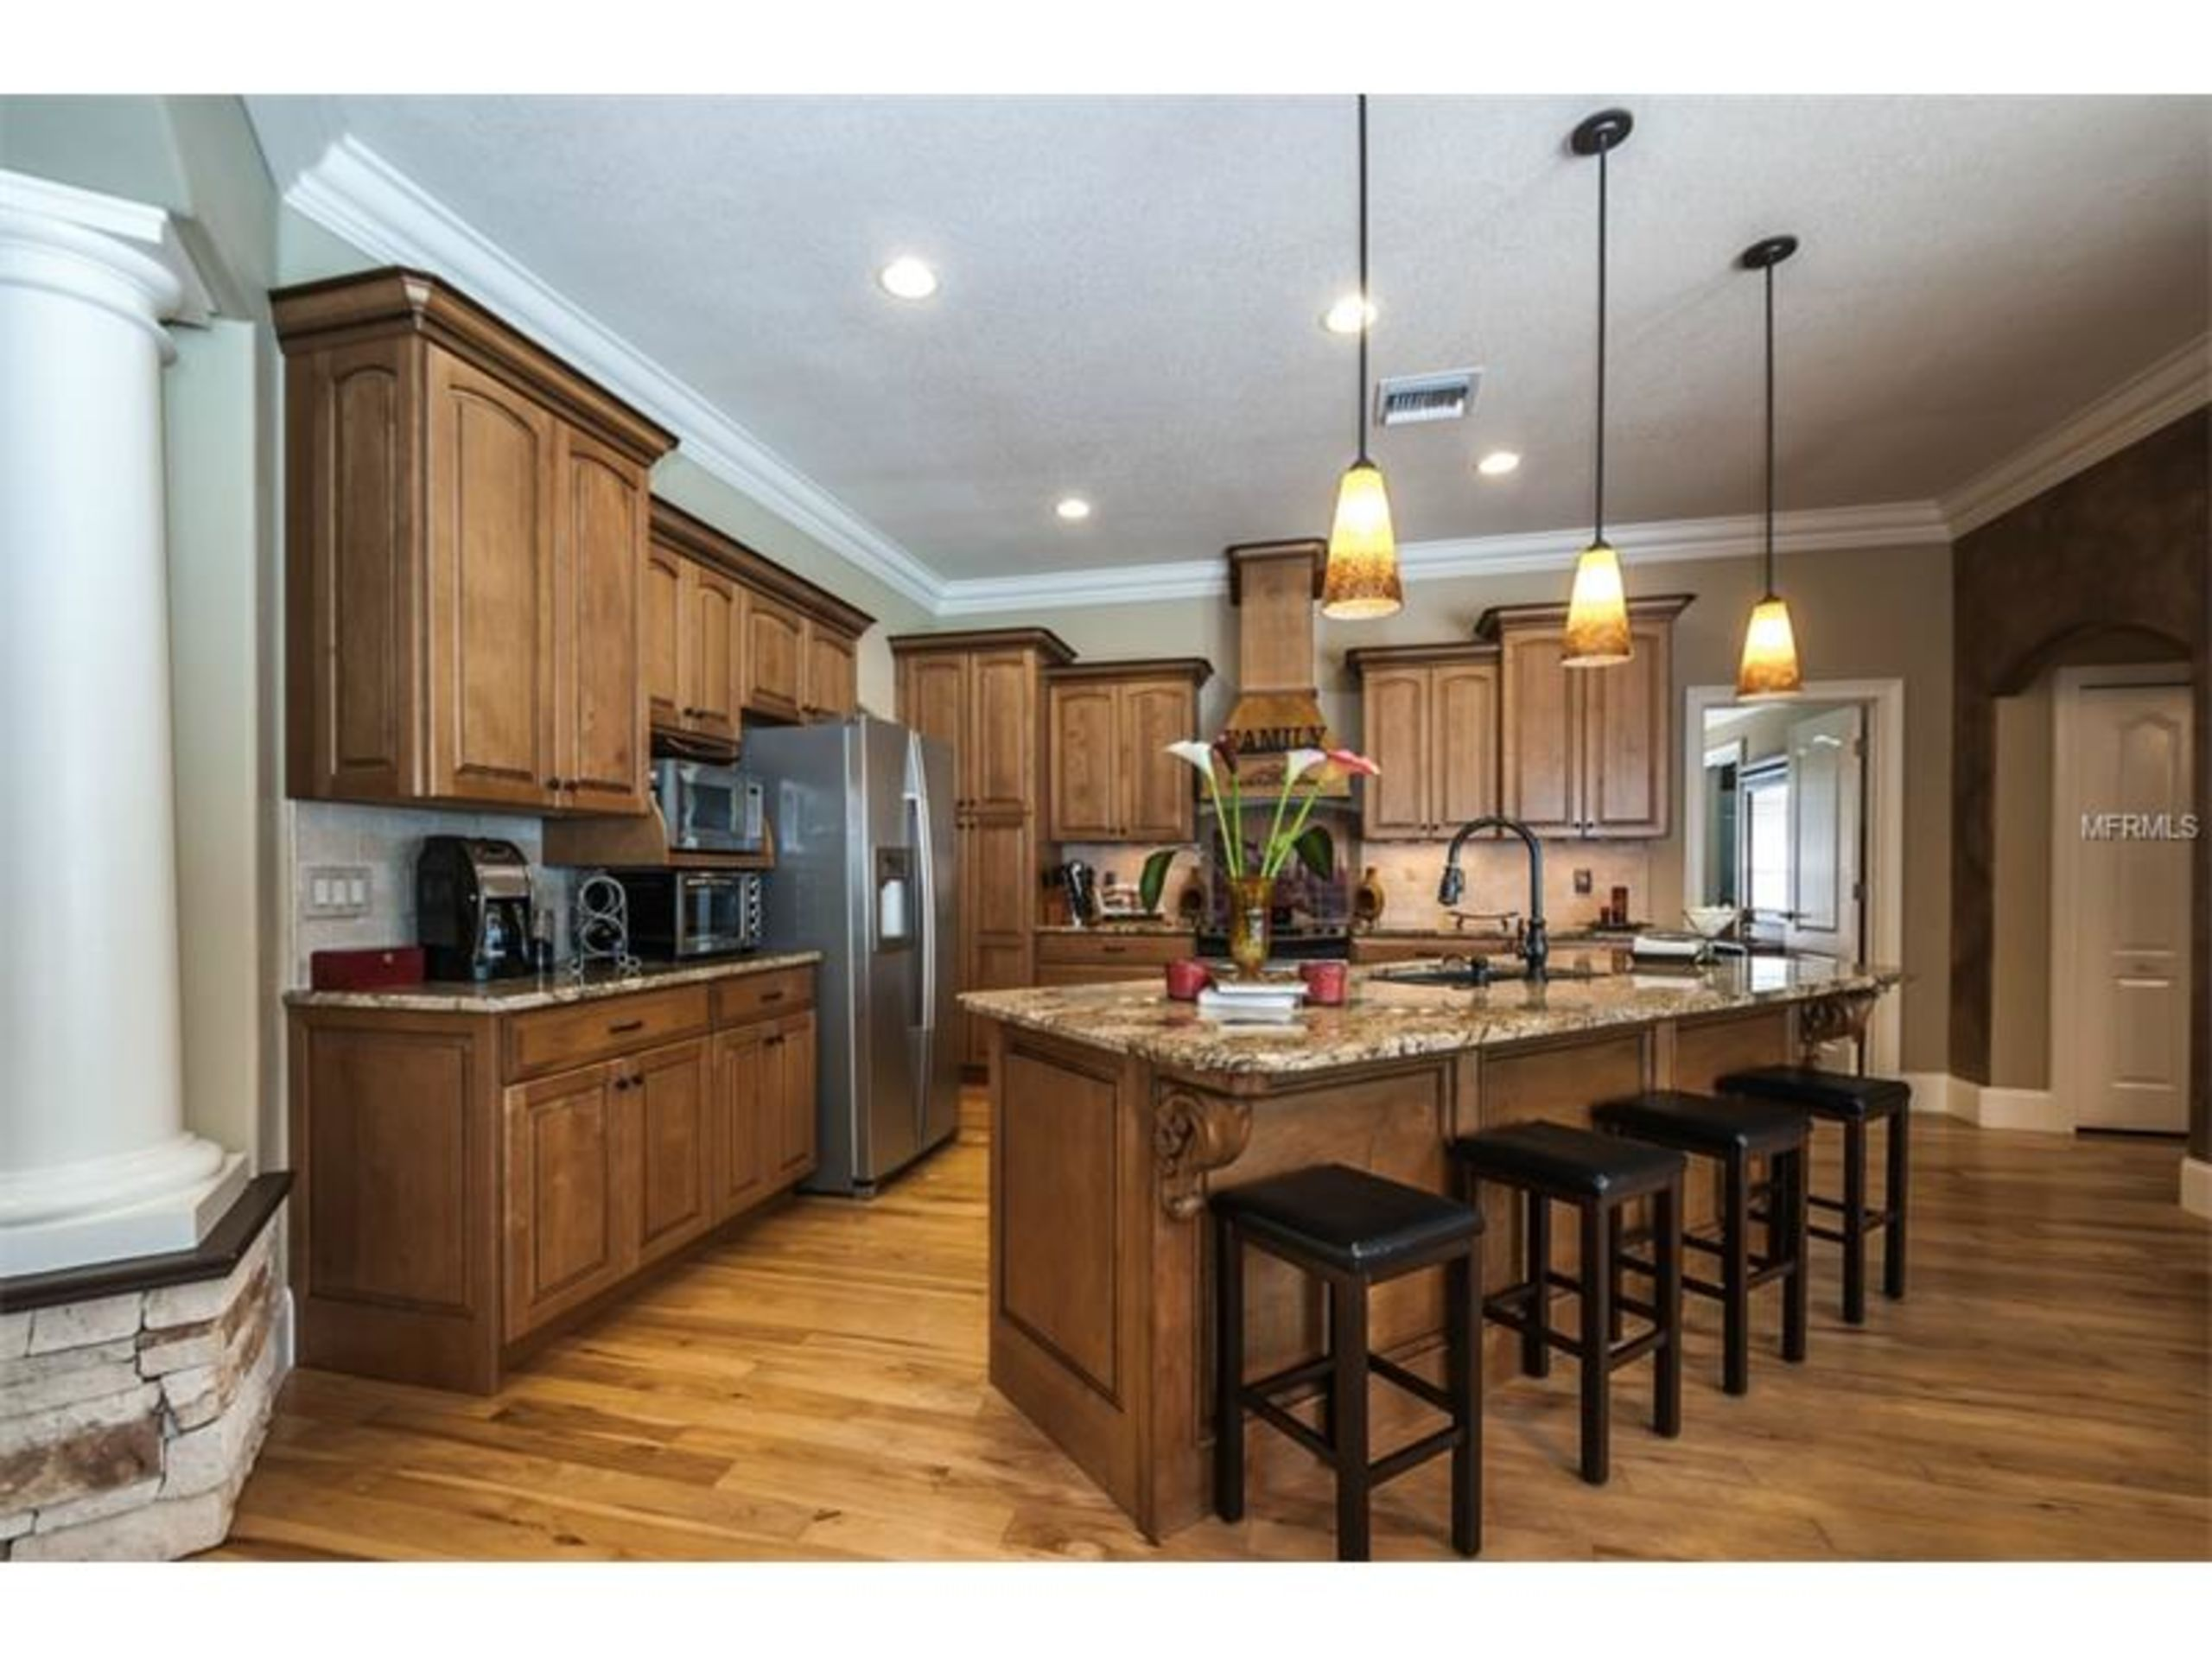 Custom Kitchen with Solid Wood Cabinets, Crown Molding, Granite Countertops over a sprawling Island with a Black Granite Under Mount Sink!